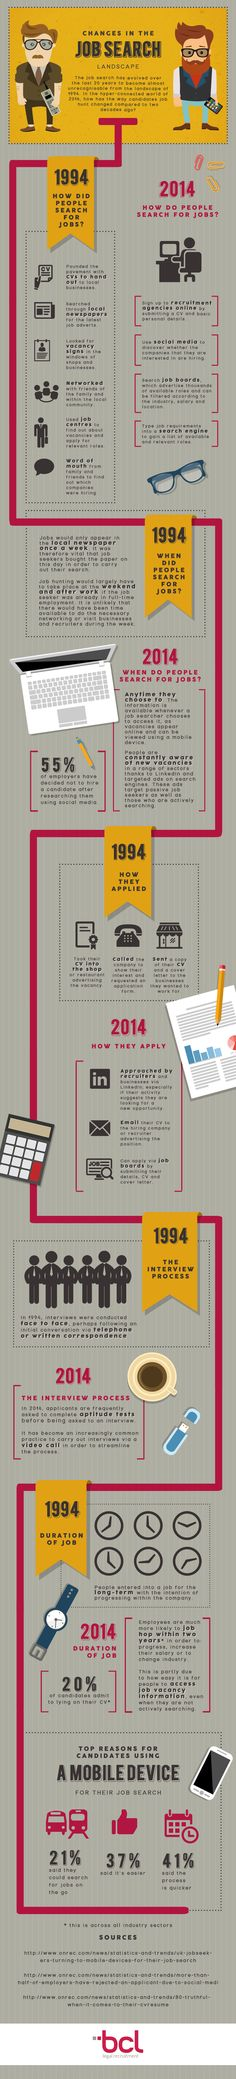 How has the job search changed since the 90's? This awesome job search infographic follows the job search of two job seekers from 1994 and 2014 to find out!